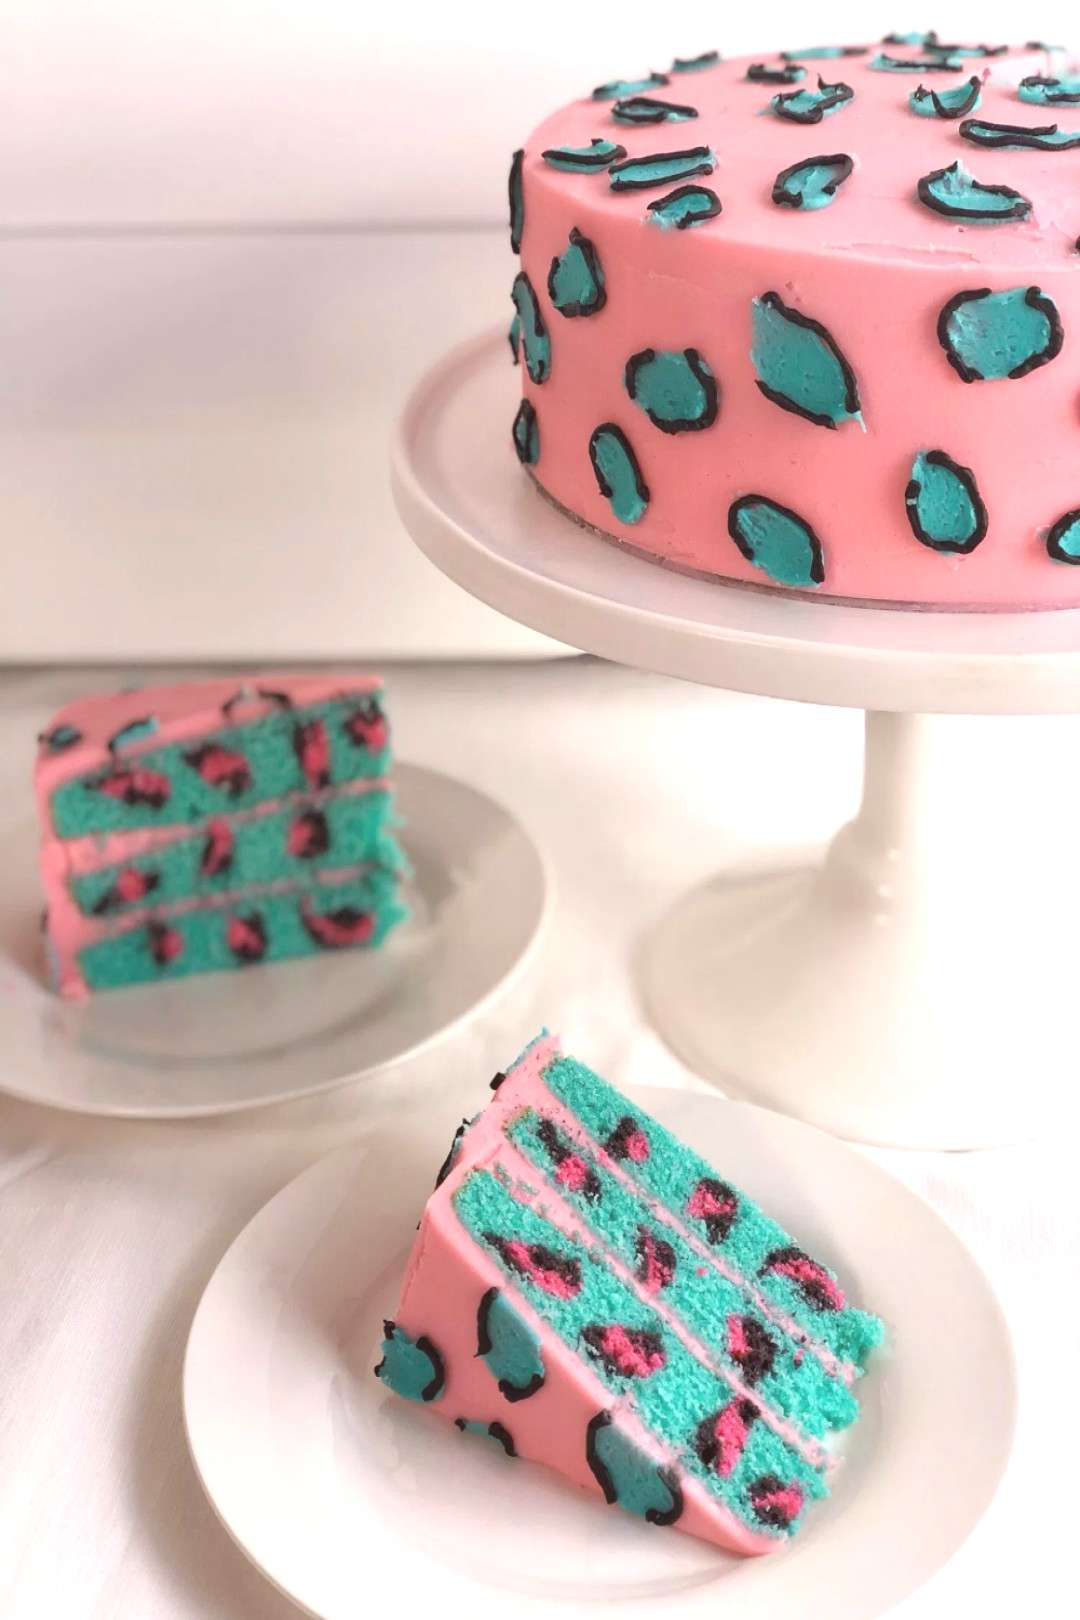 Leopard print cake with a surprise inside! - CAKE STYLE